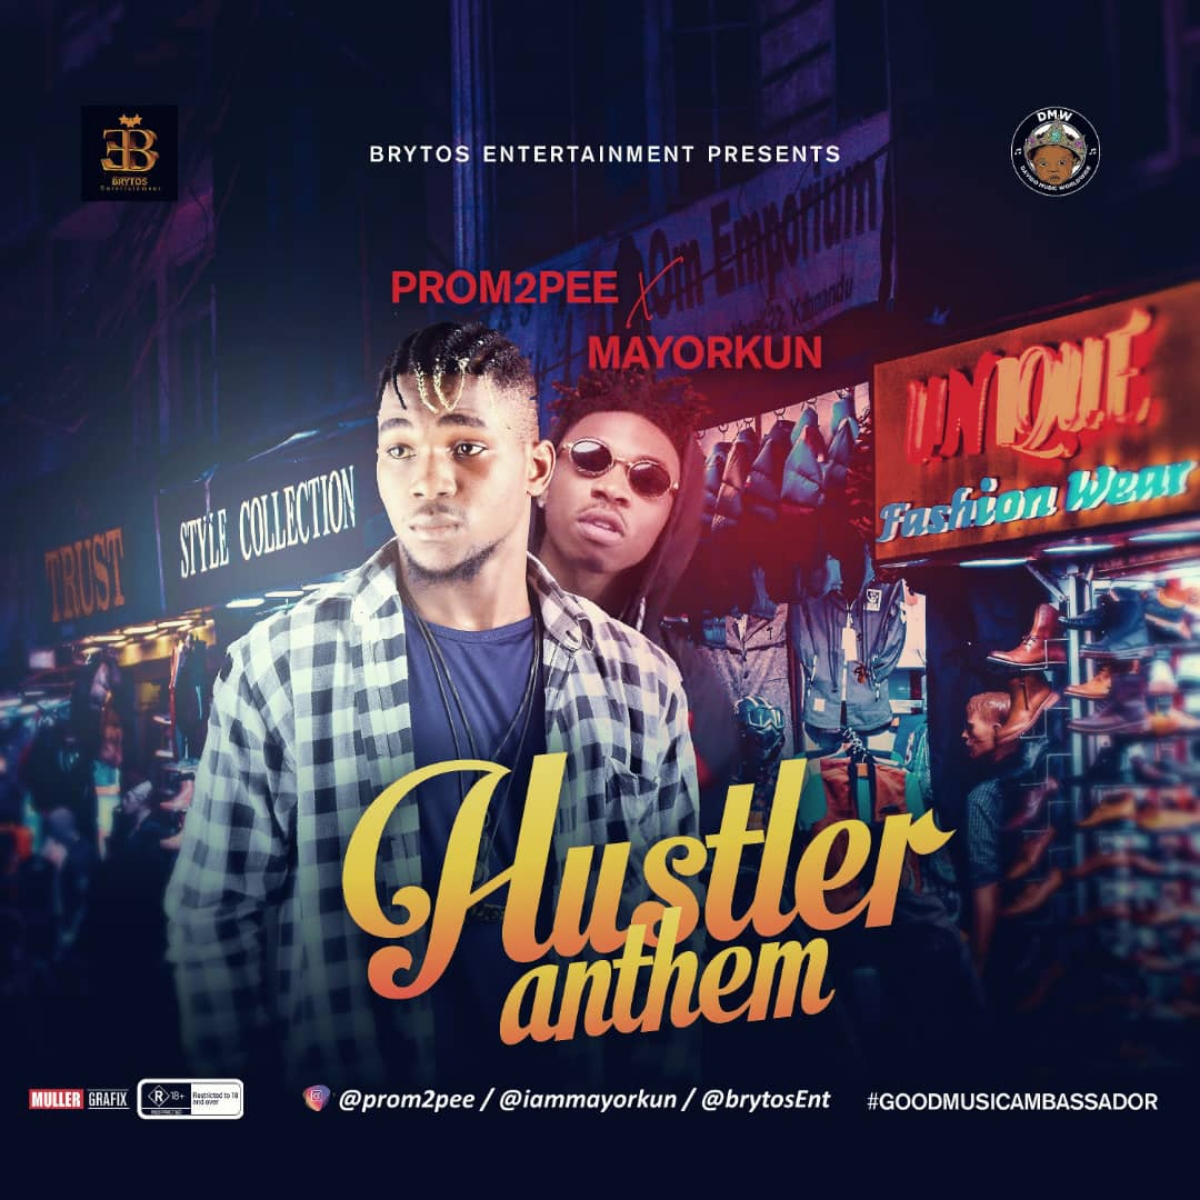 Music: Mayorkun x Prom2pee - Hustler Anthem